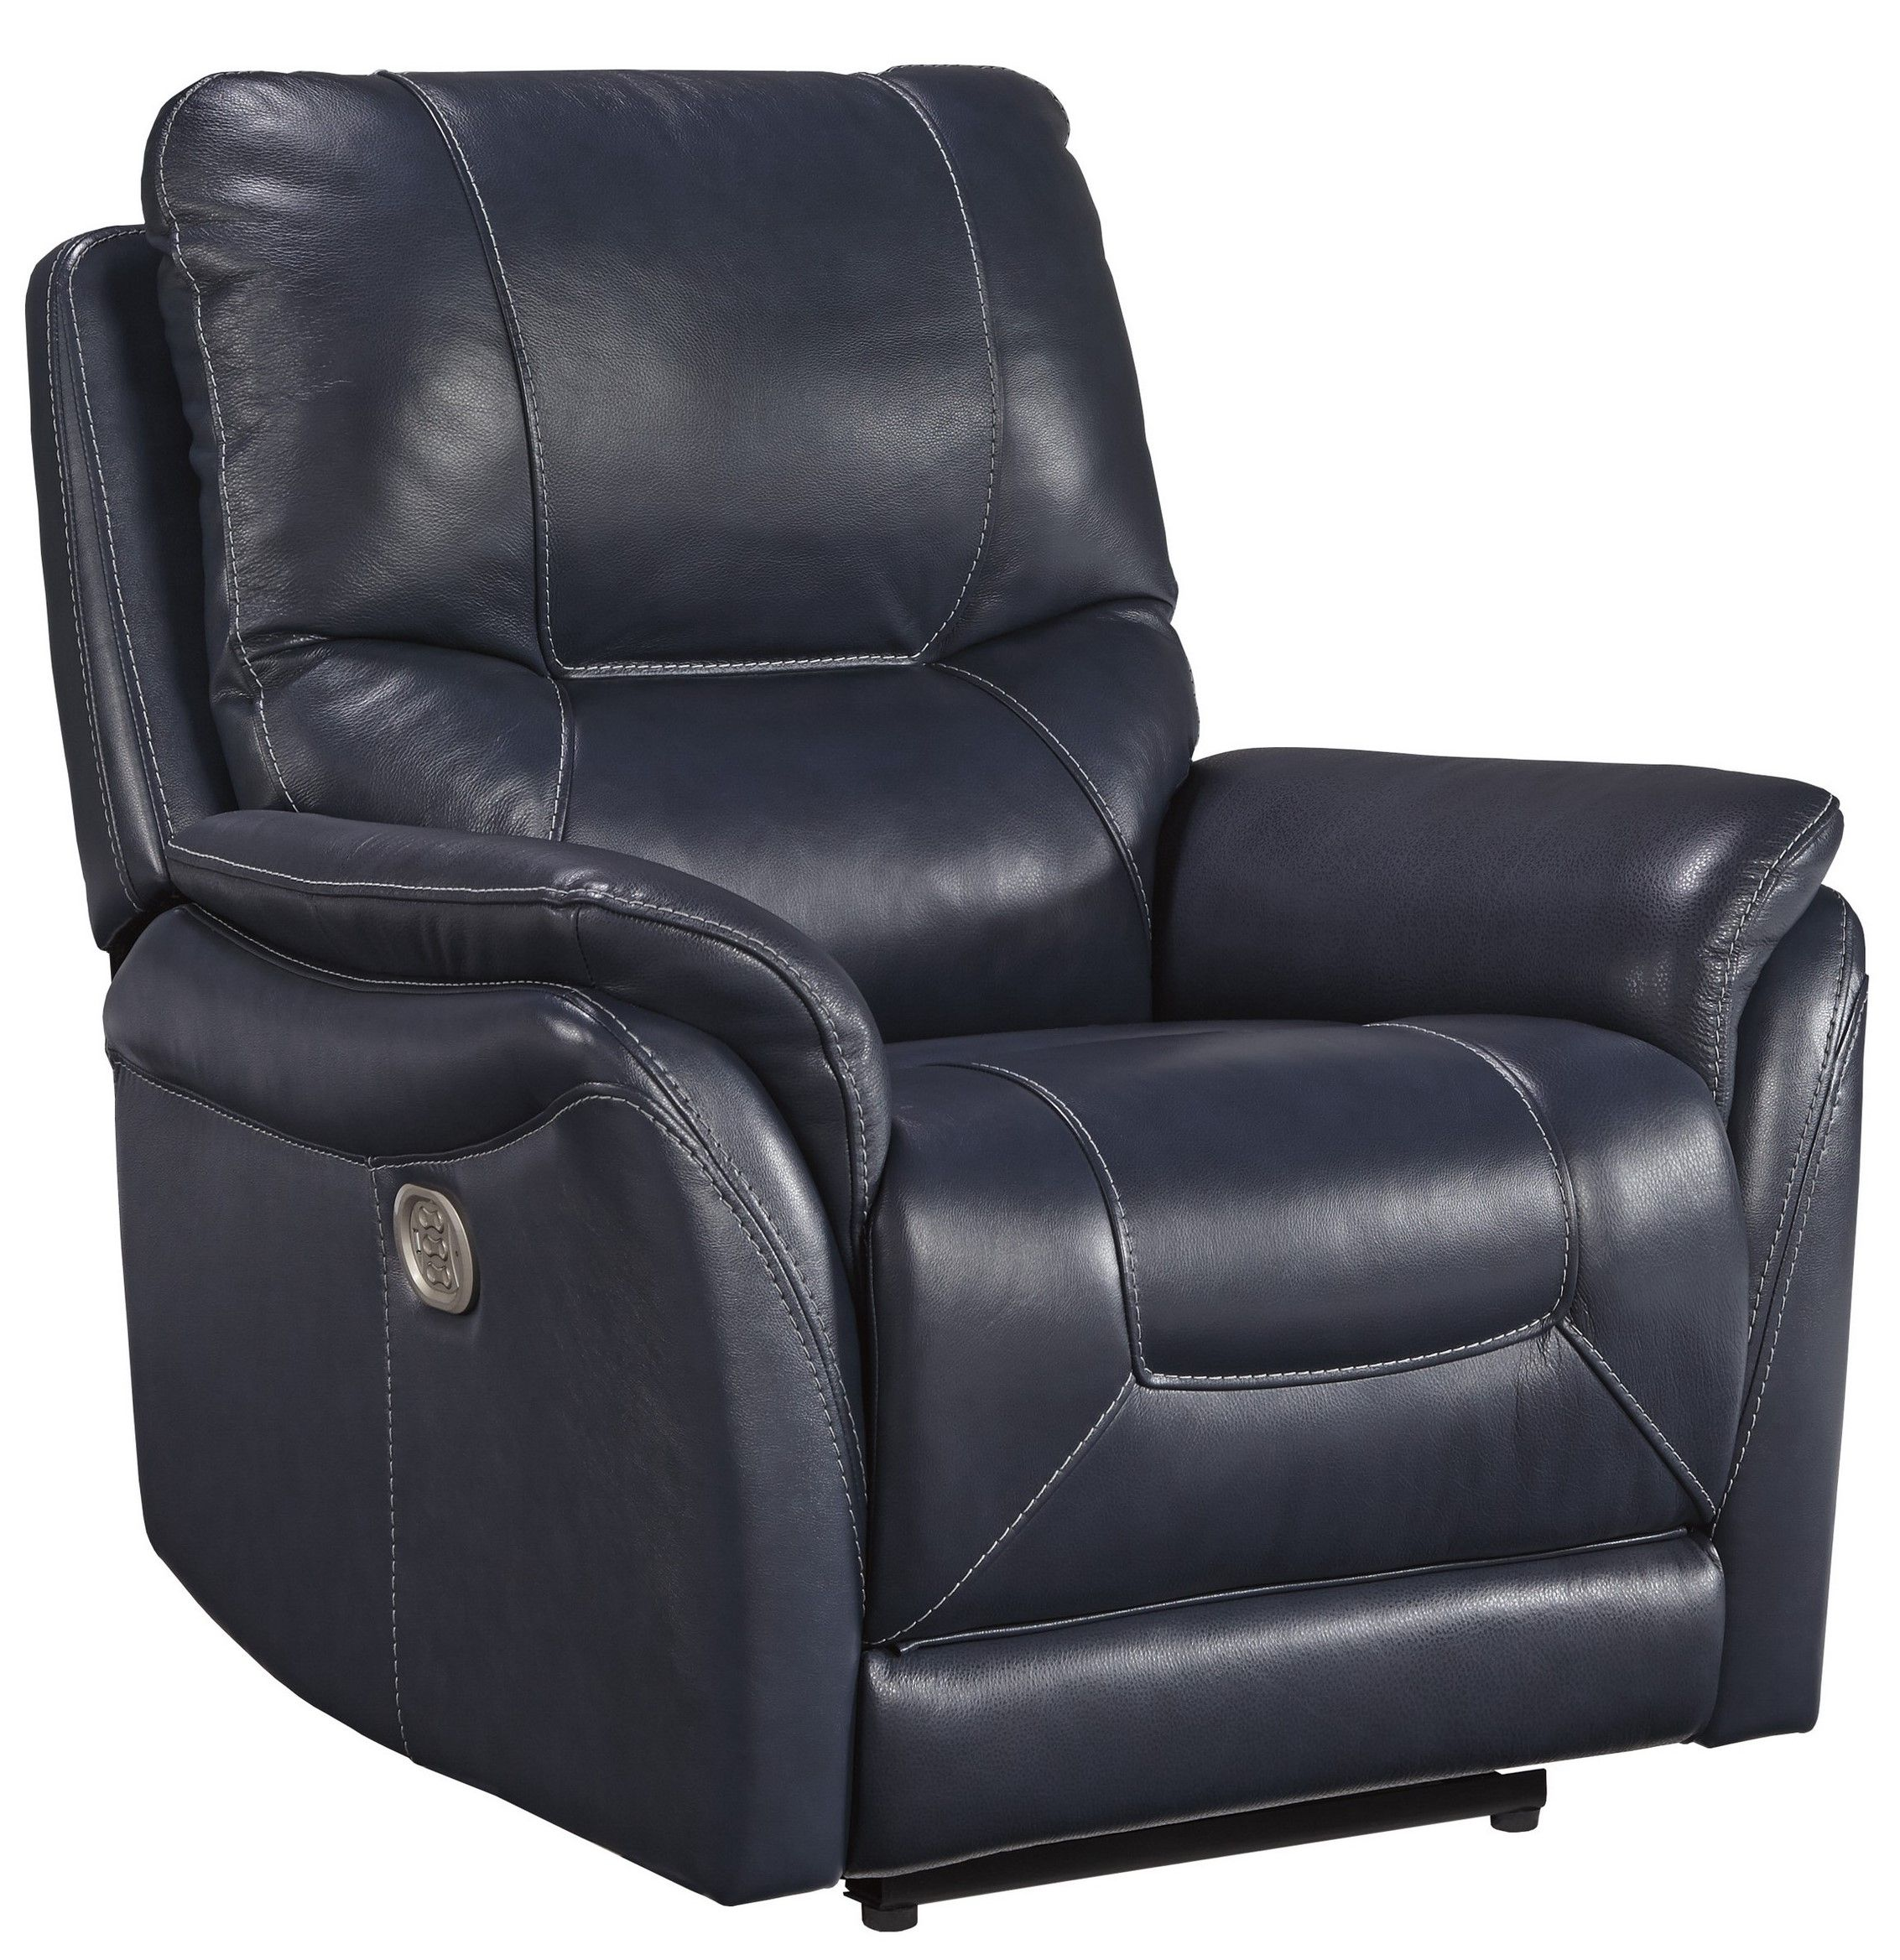 Lowest Price On Signature Design By Ashley Stolpen Blue Power Recliner With Adjustable Headrest 5650413 Shop Today Recliner Power Recliners Furniture